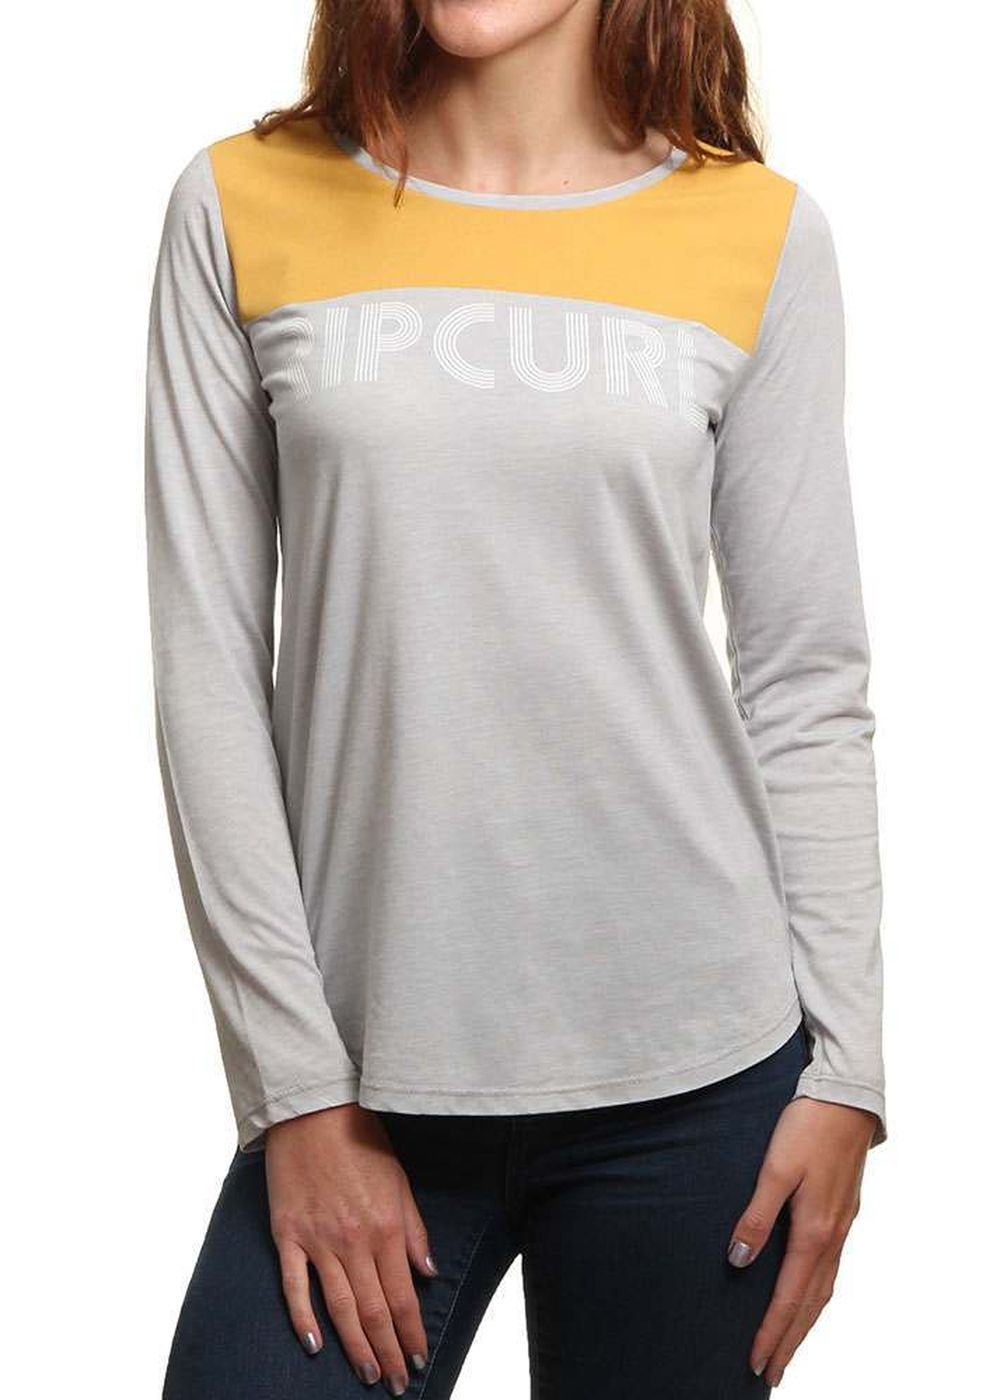 ripcurl-delano-long-sleeve-top-cement-marle